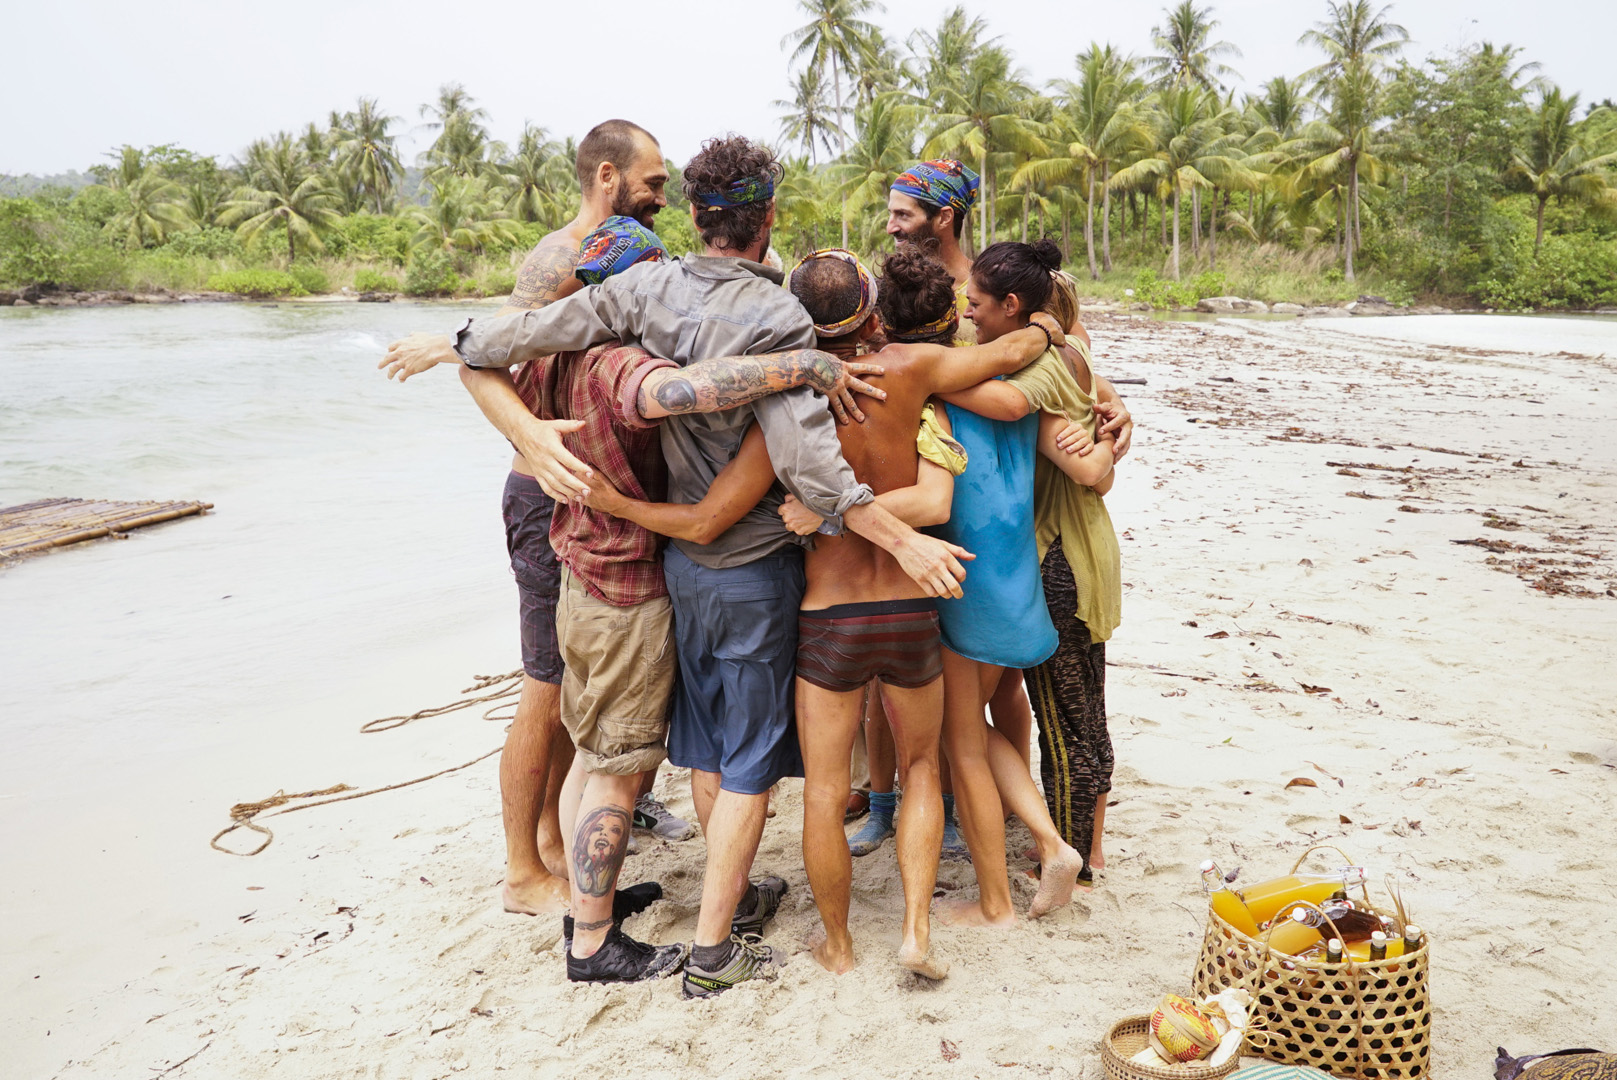 The castaways embrace before the game begins again.